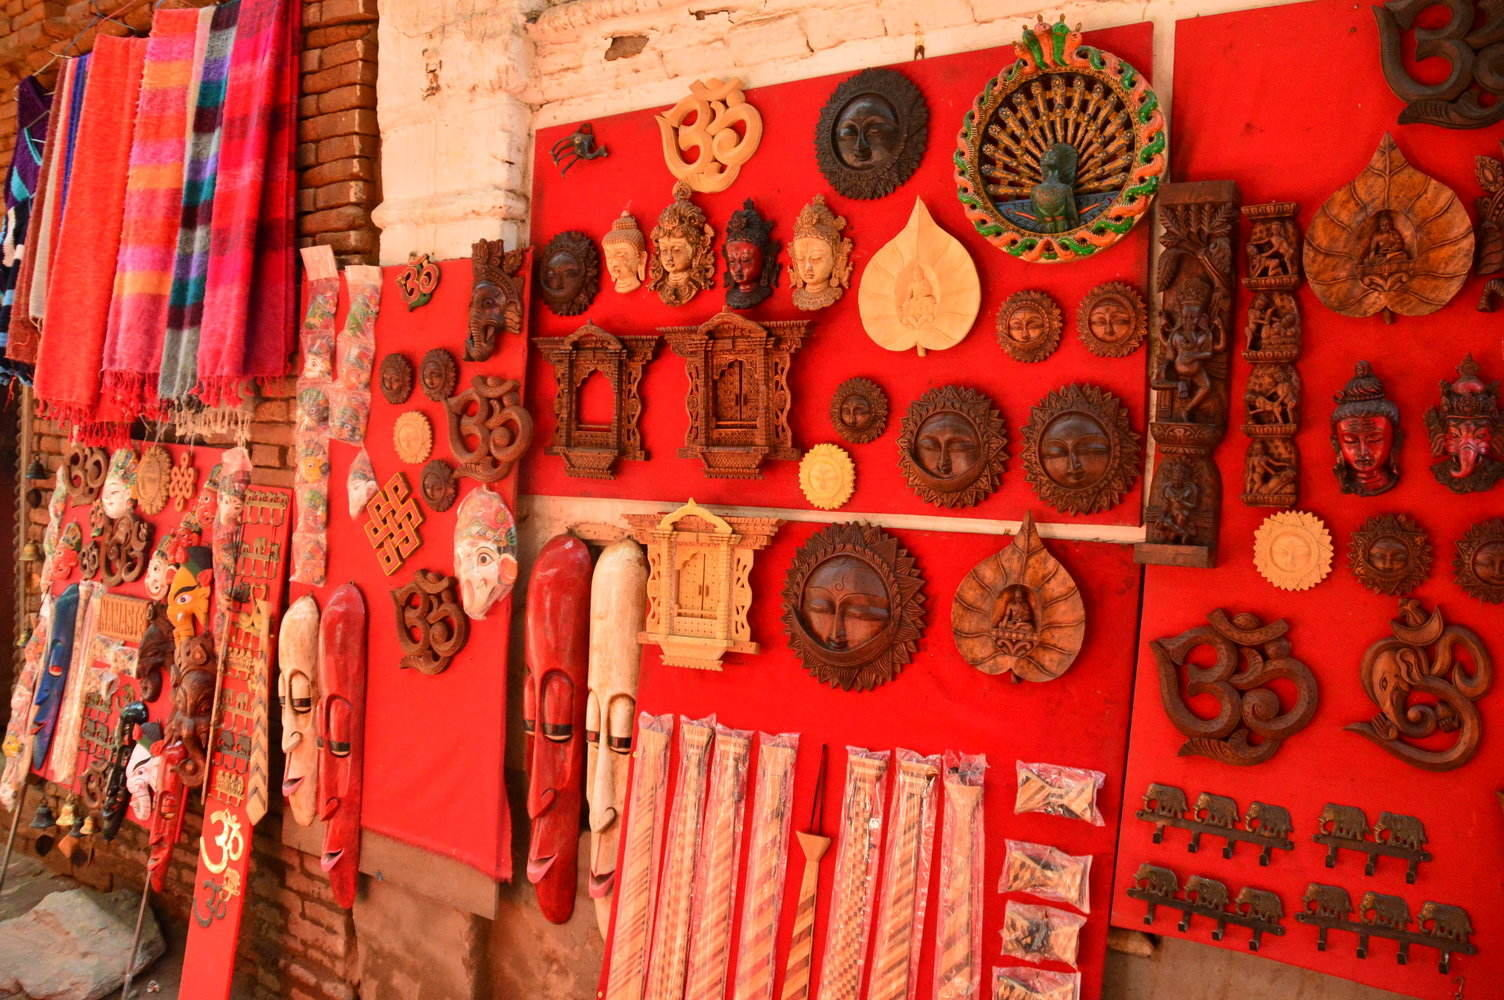 wooden handicrafts on red cloths up on a wall in bhaktapur